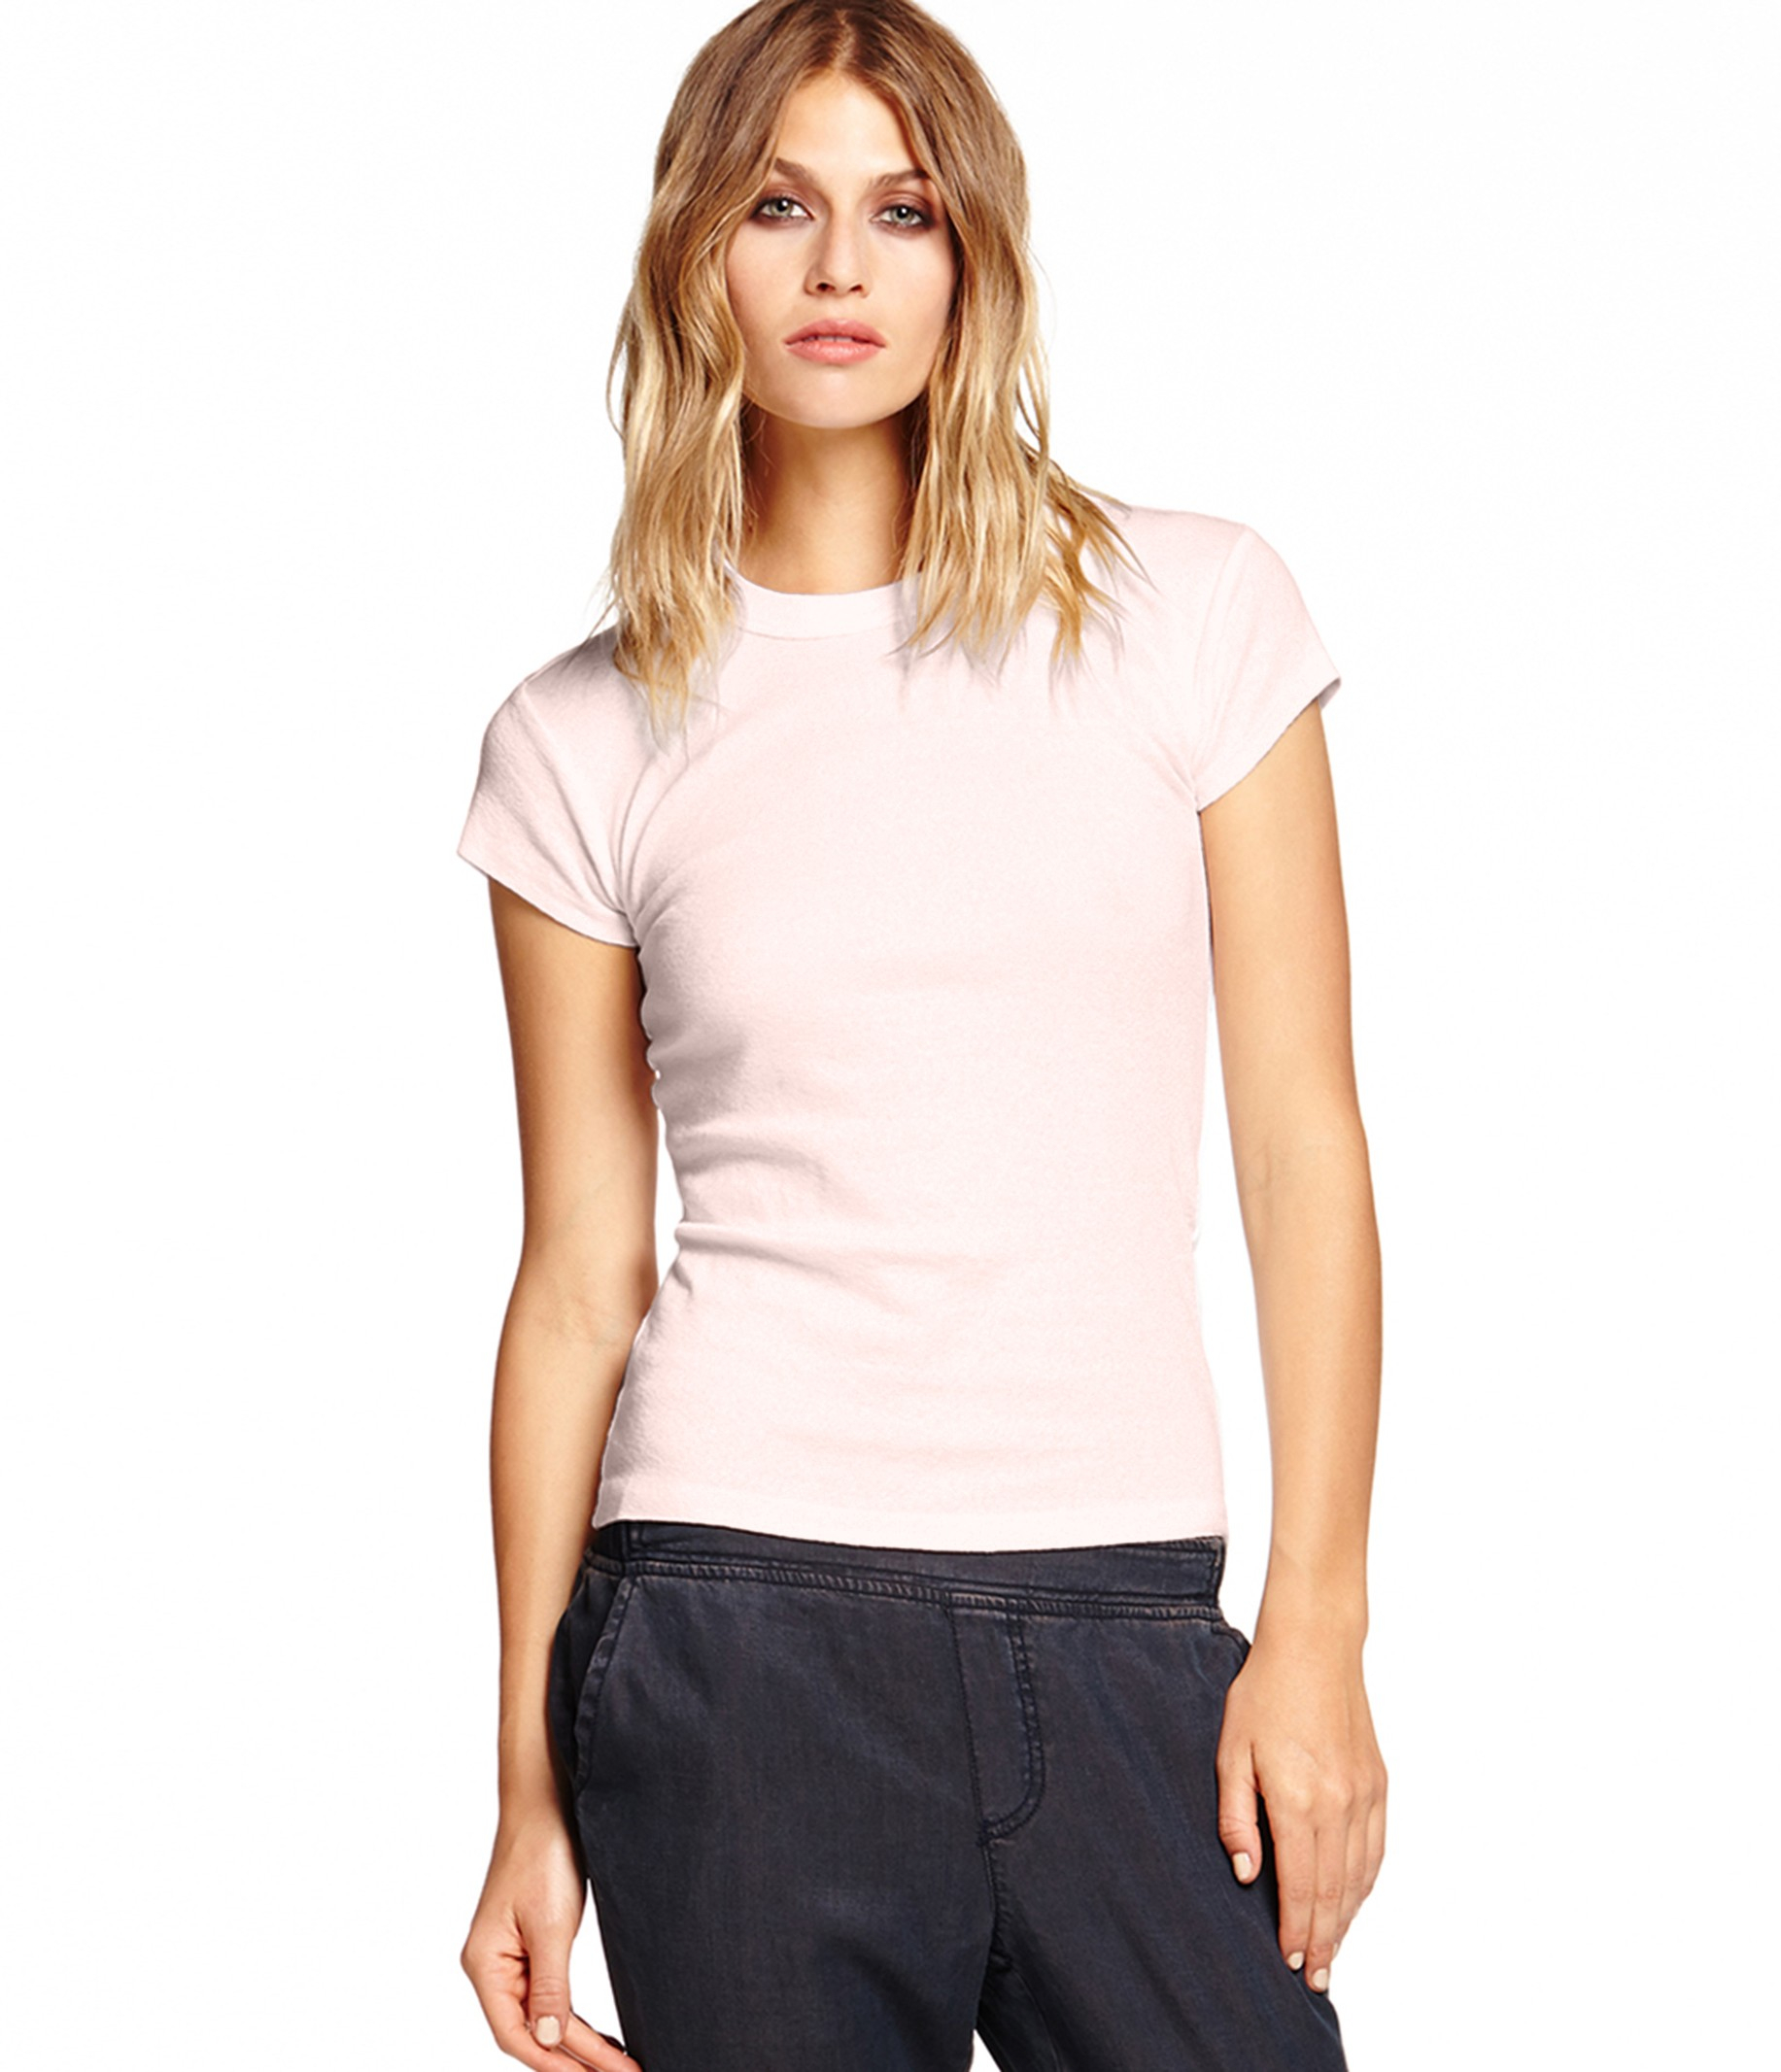 Michael stars shine capsleeve crew neck tee in pink lyst for Michael stars tee shirts